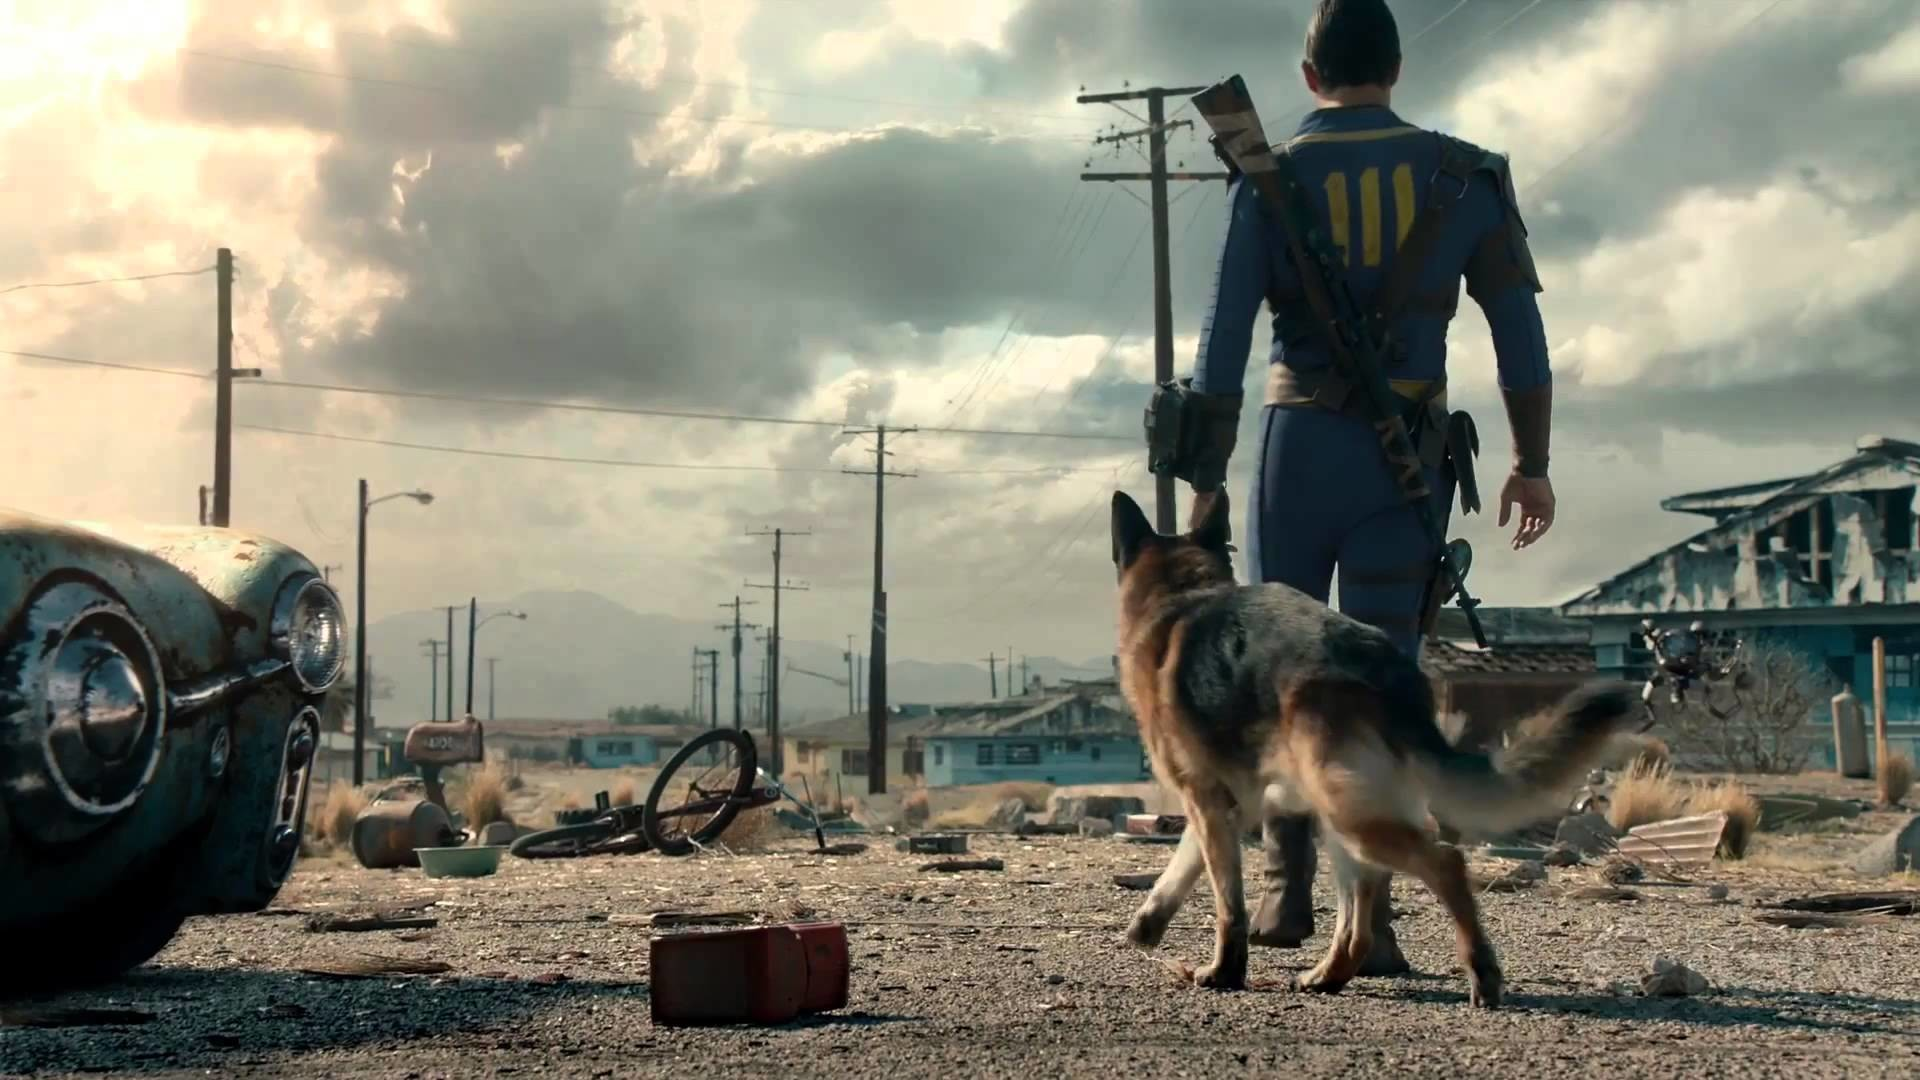 1920x1080 Images for fallout 4